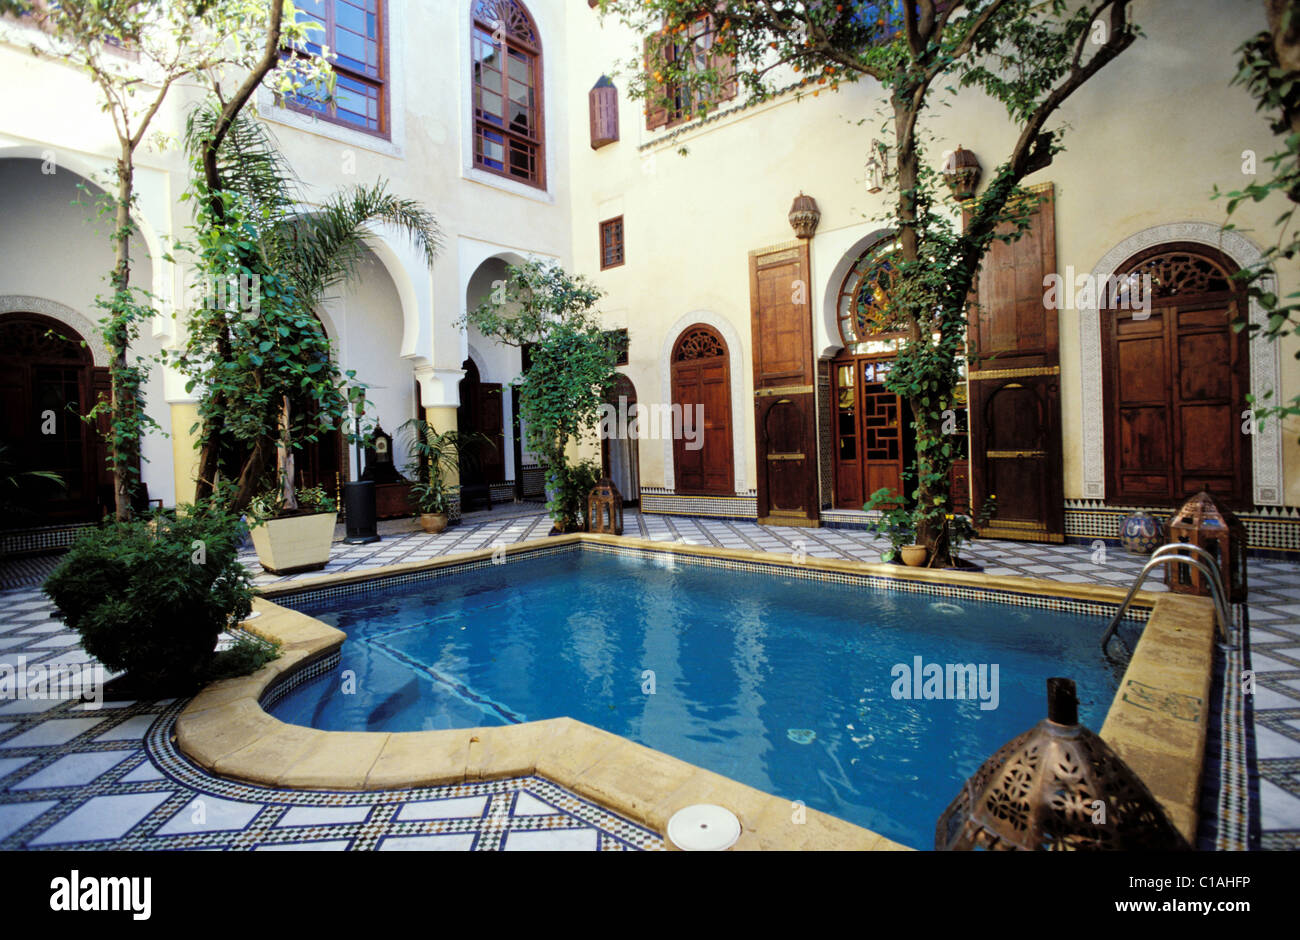 Morocco fes riad maison bleue the swimming pool in the patio stock photo royalty free image - Maison bleue mobel ...